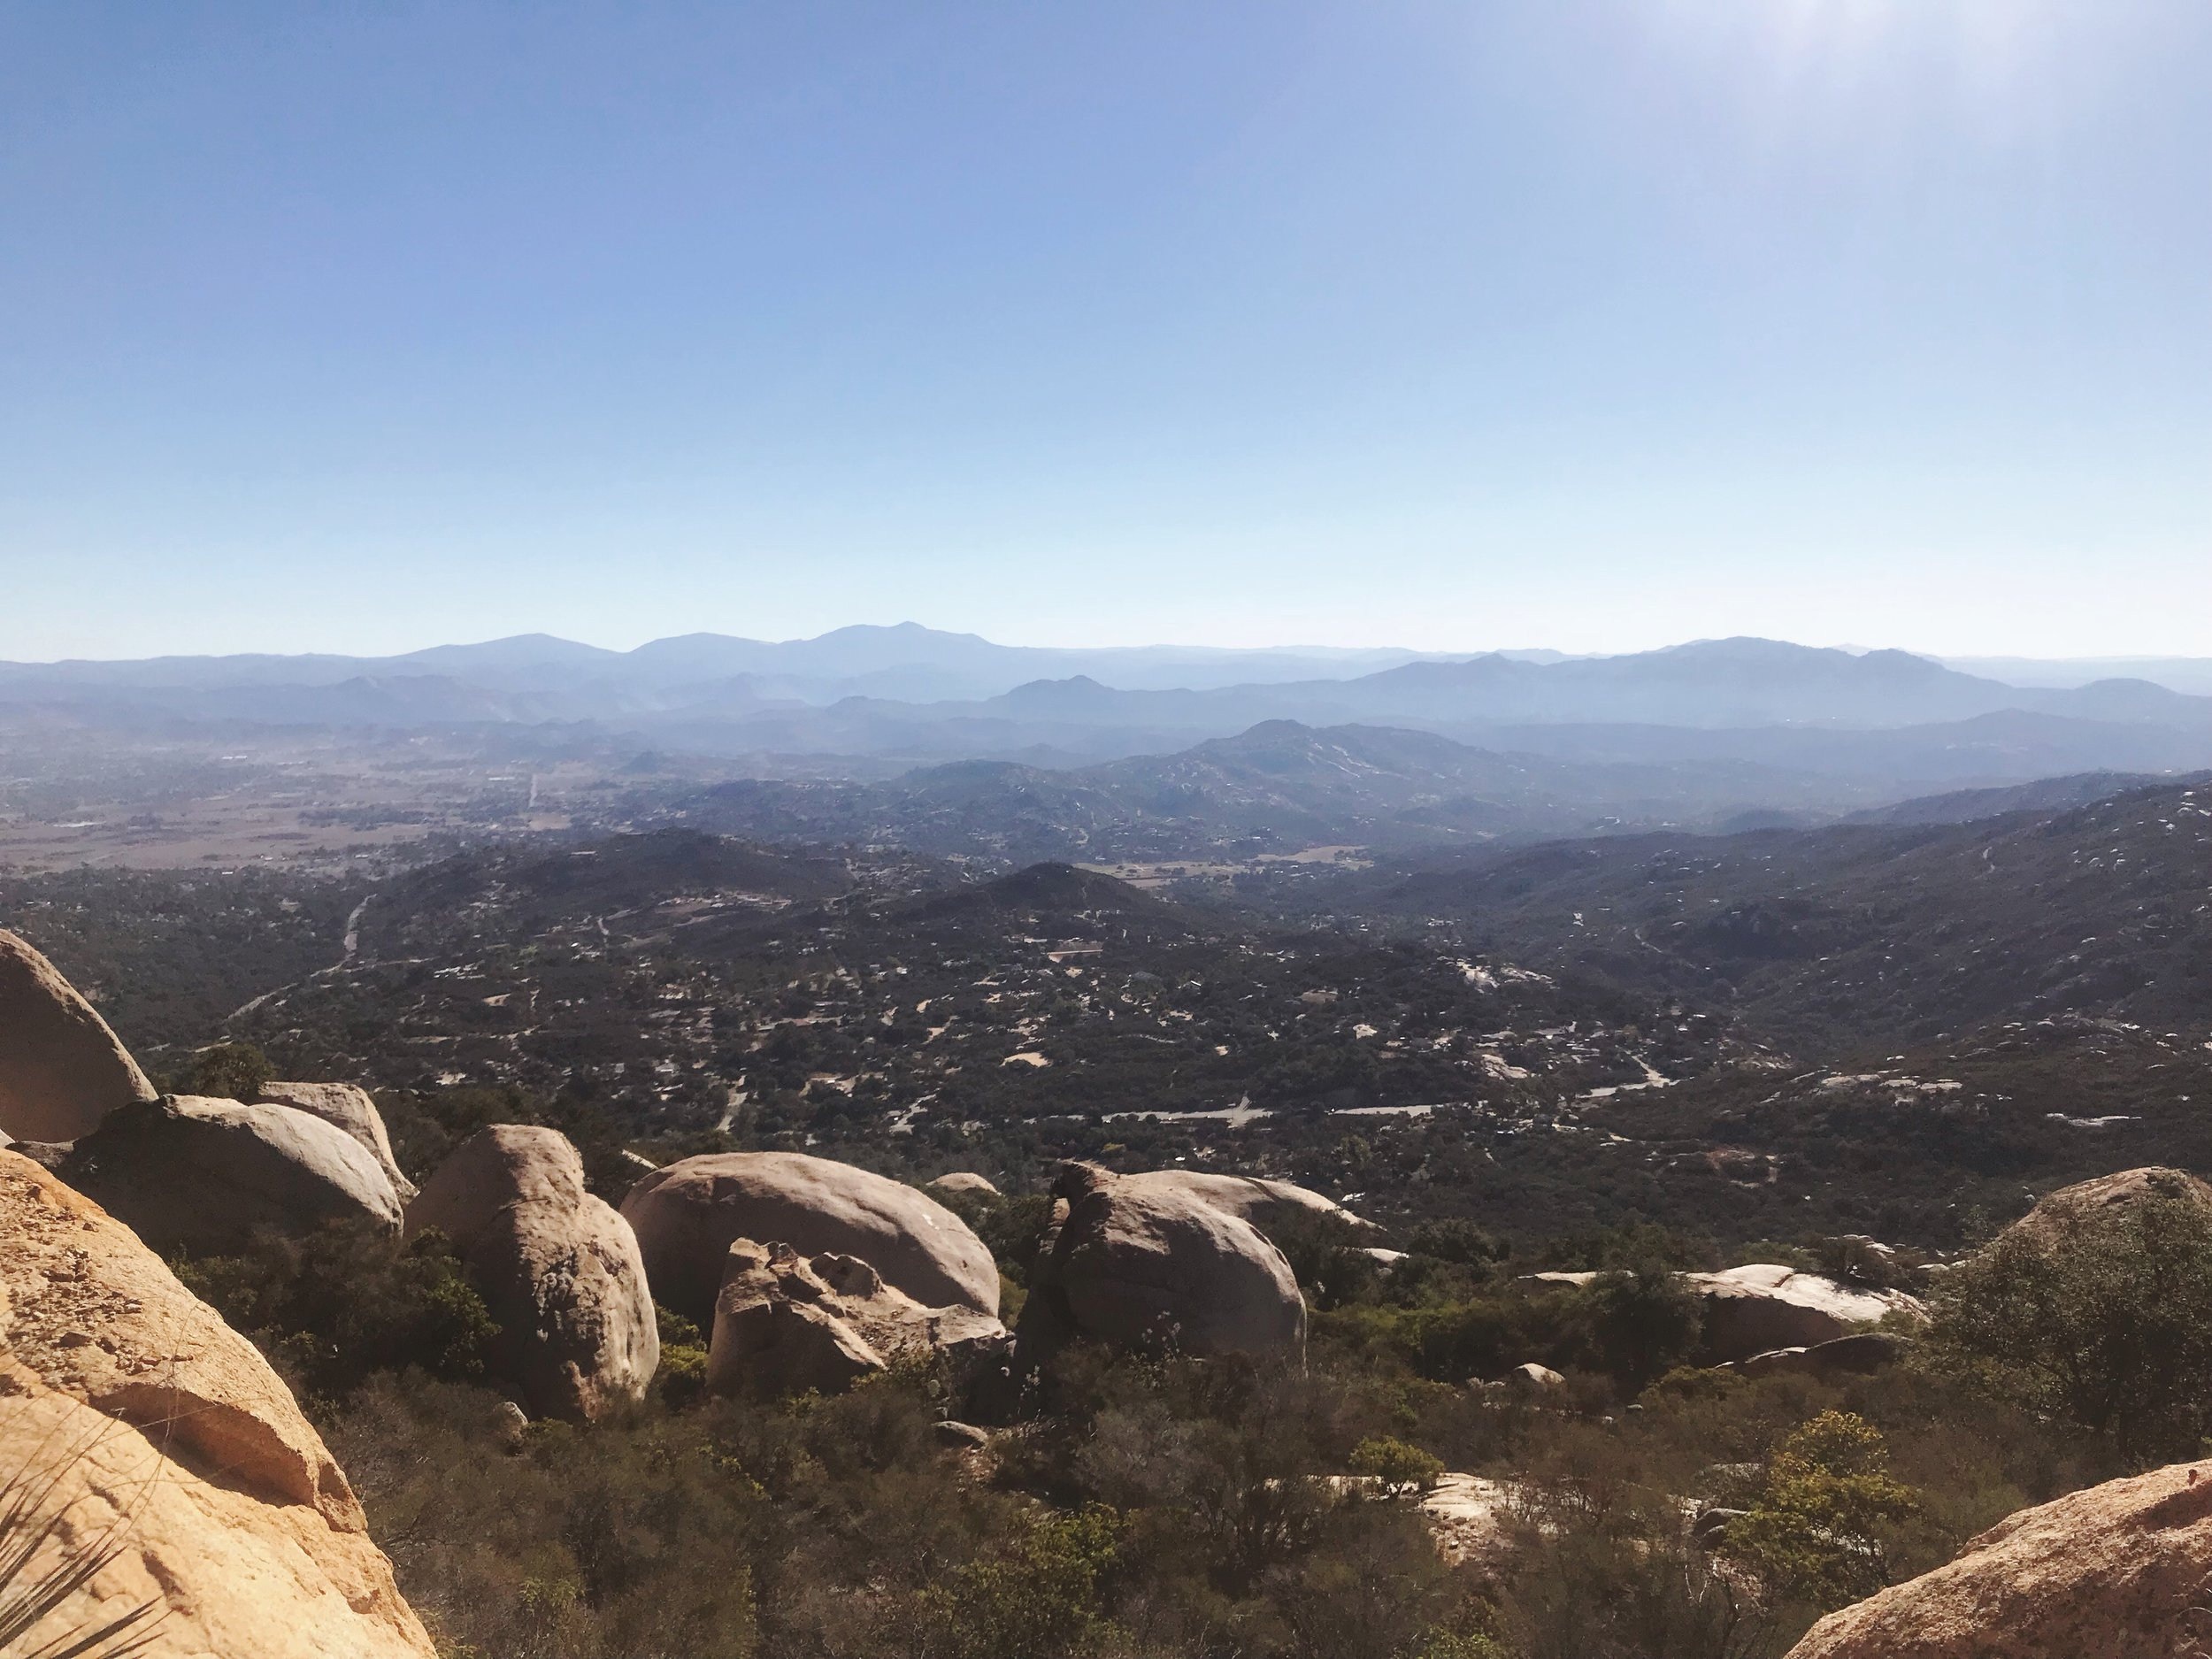 October 27th, 2018 - A view from near the top of the hike. So cool to live within driving distance of mountains!